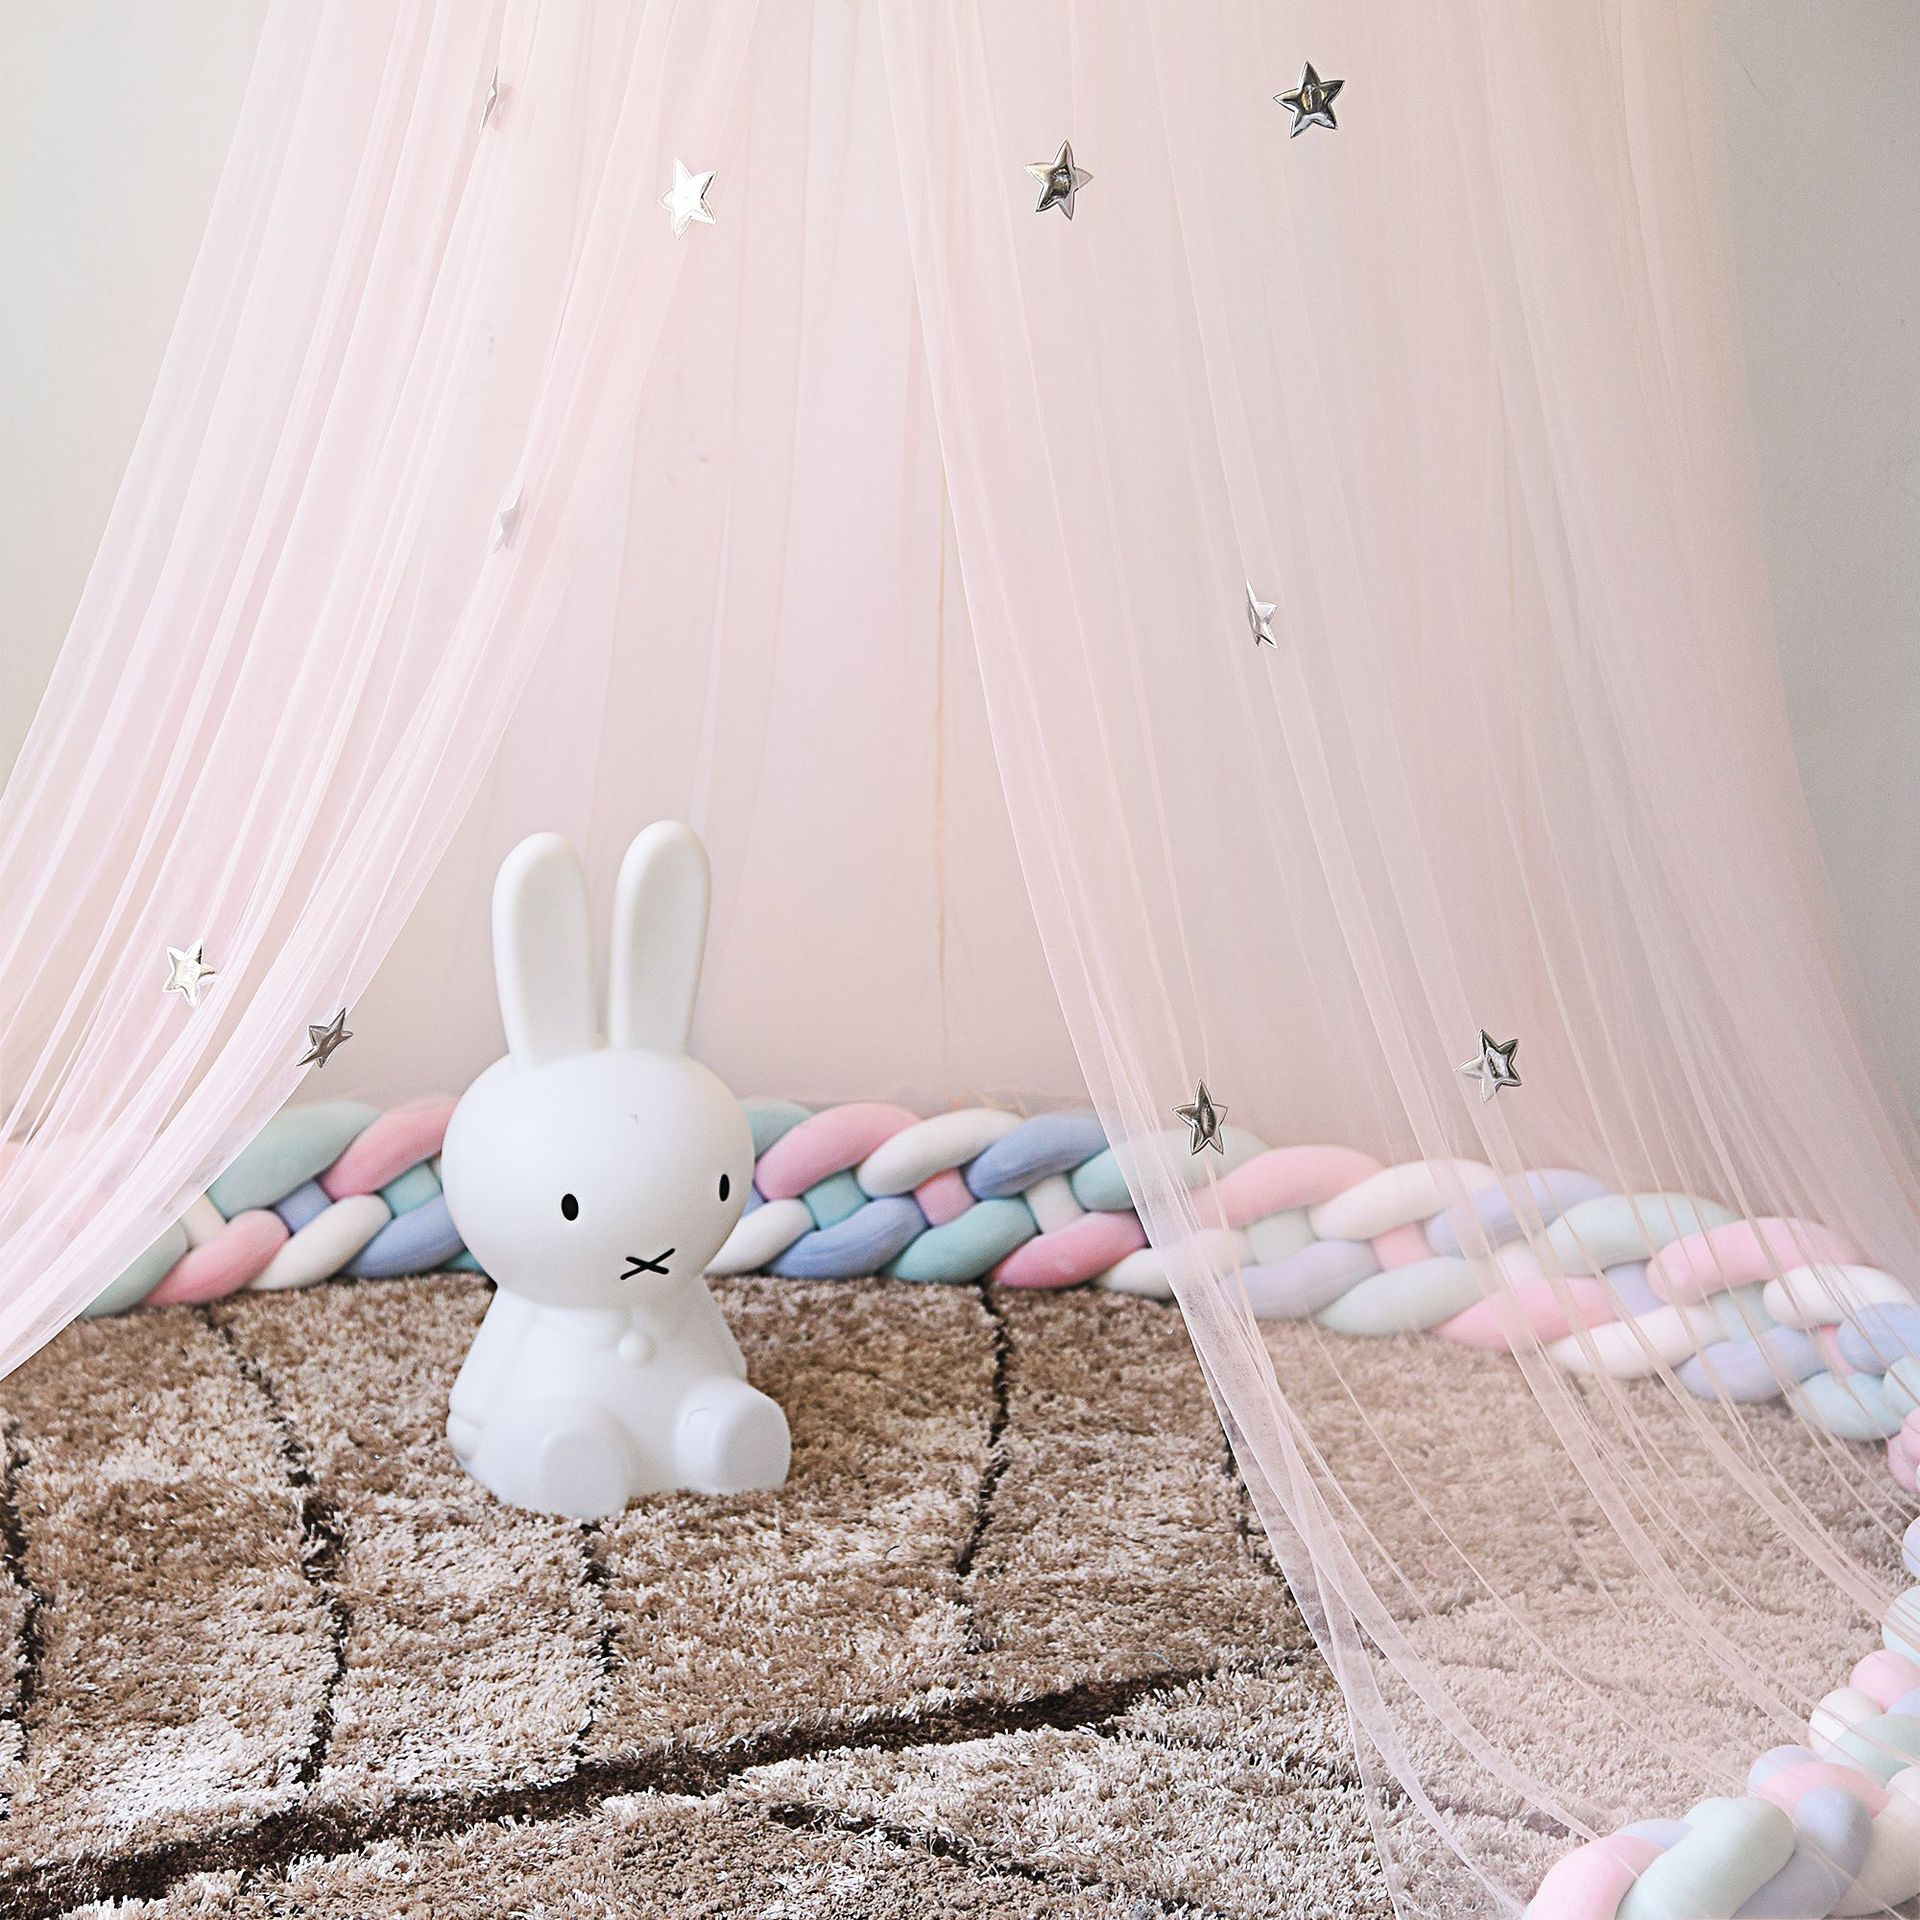 Bed canopy with feather stars decoration mosquito net for children room